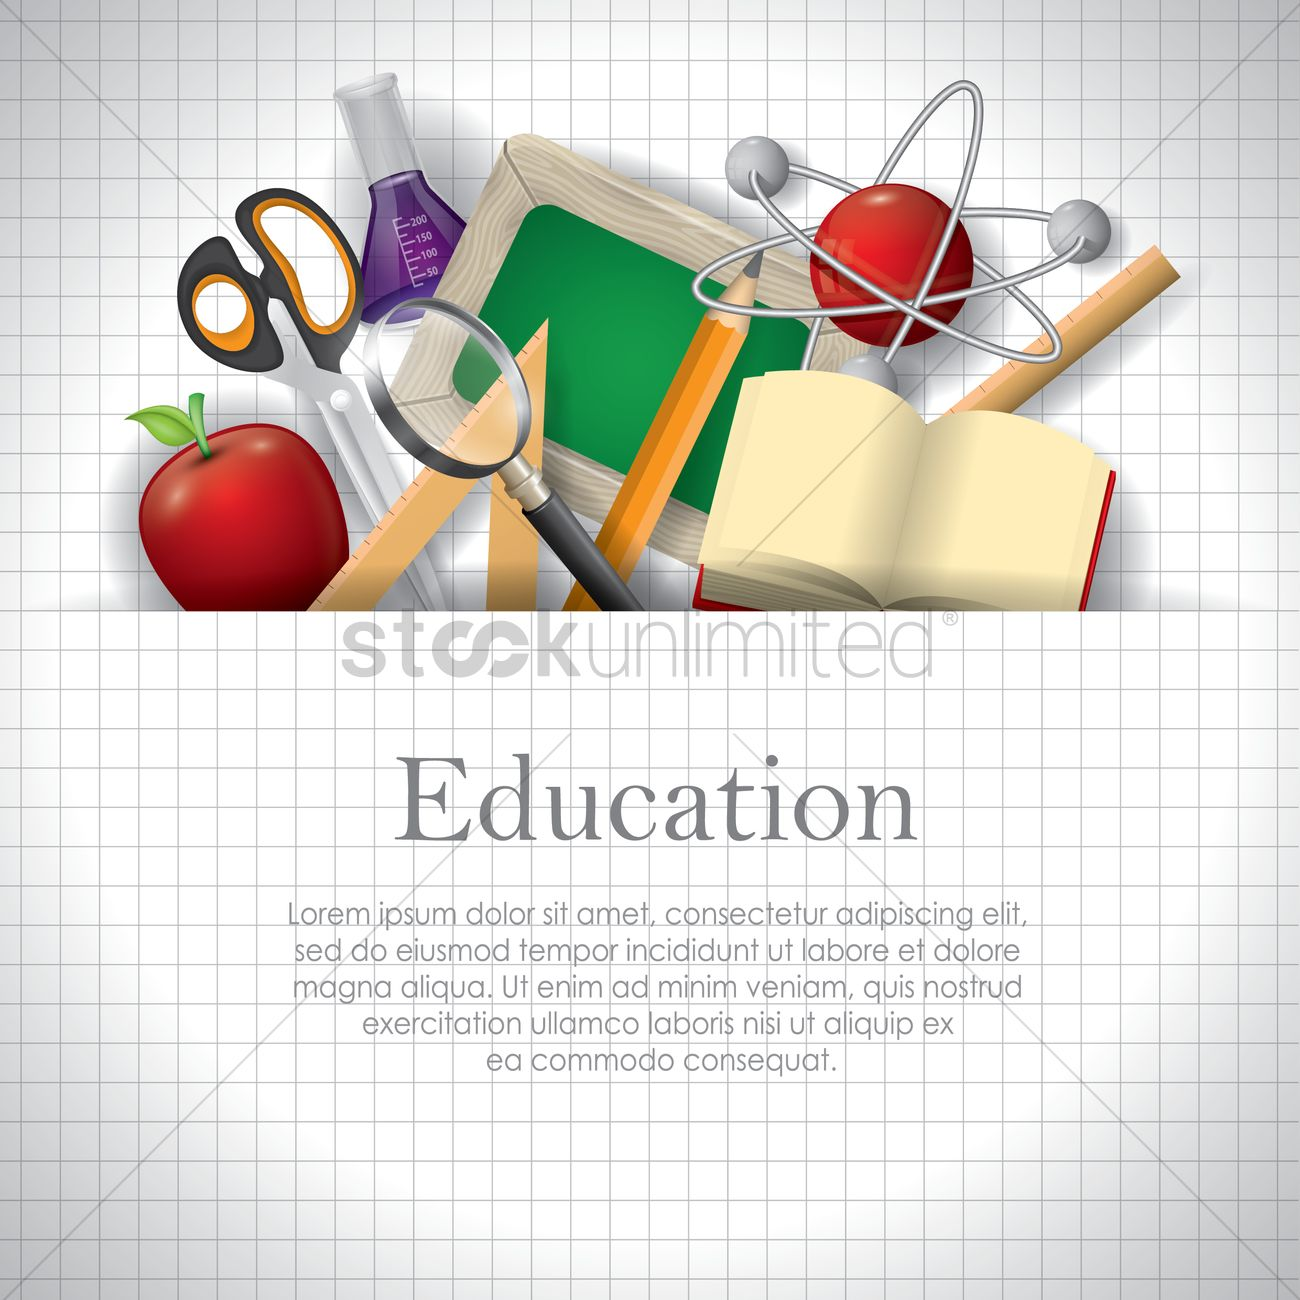 Education Wallpaper Vector Image - 1821875